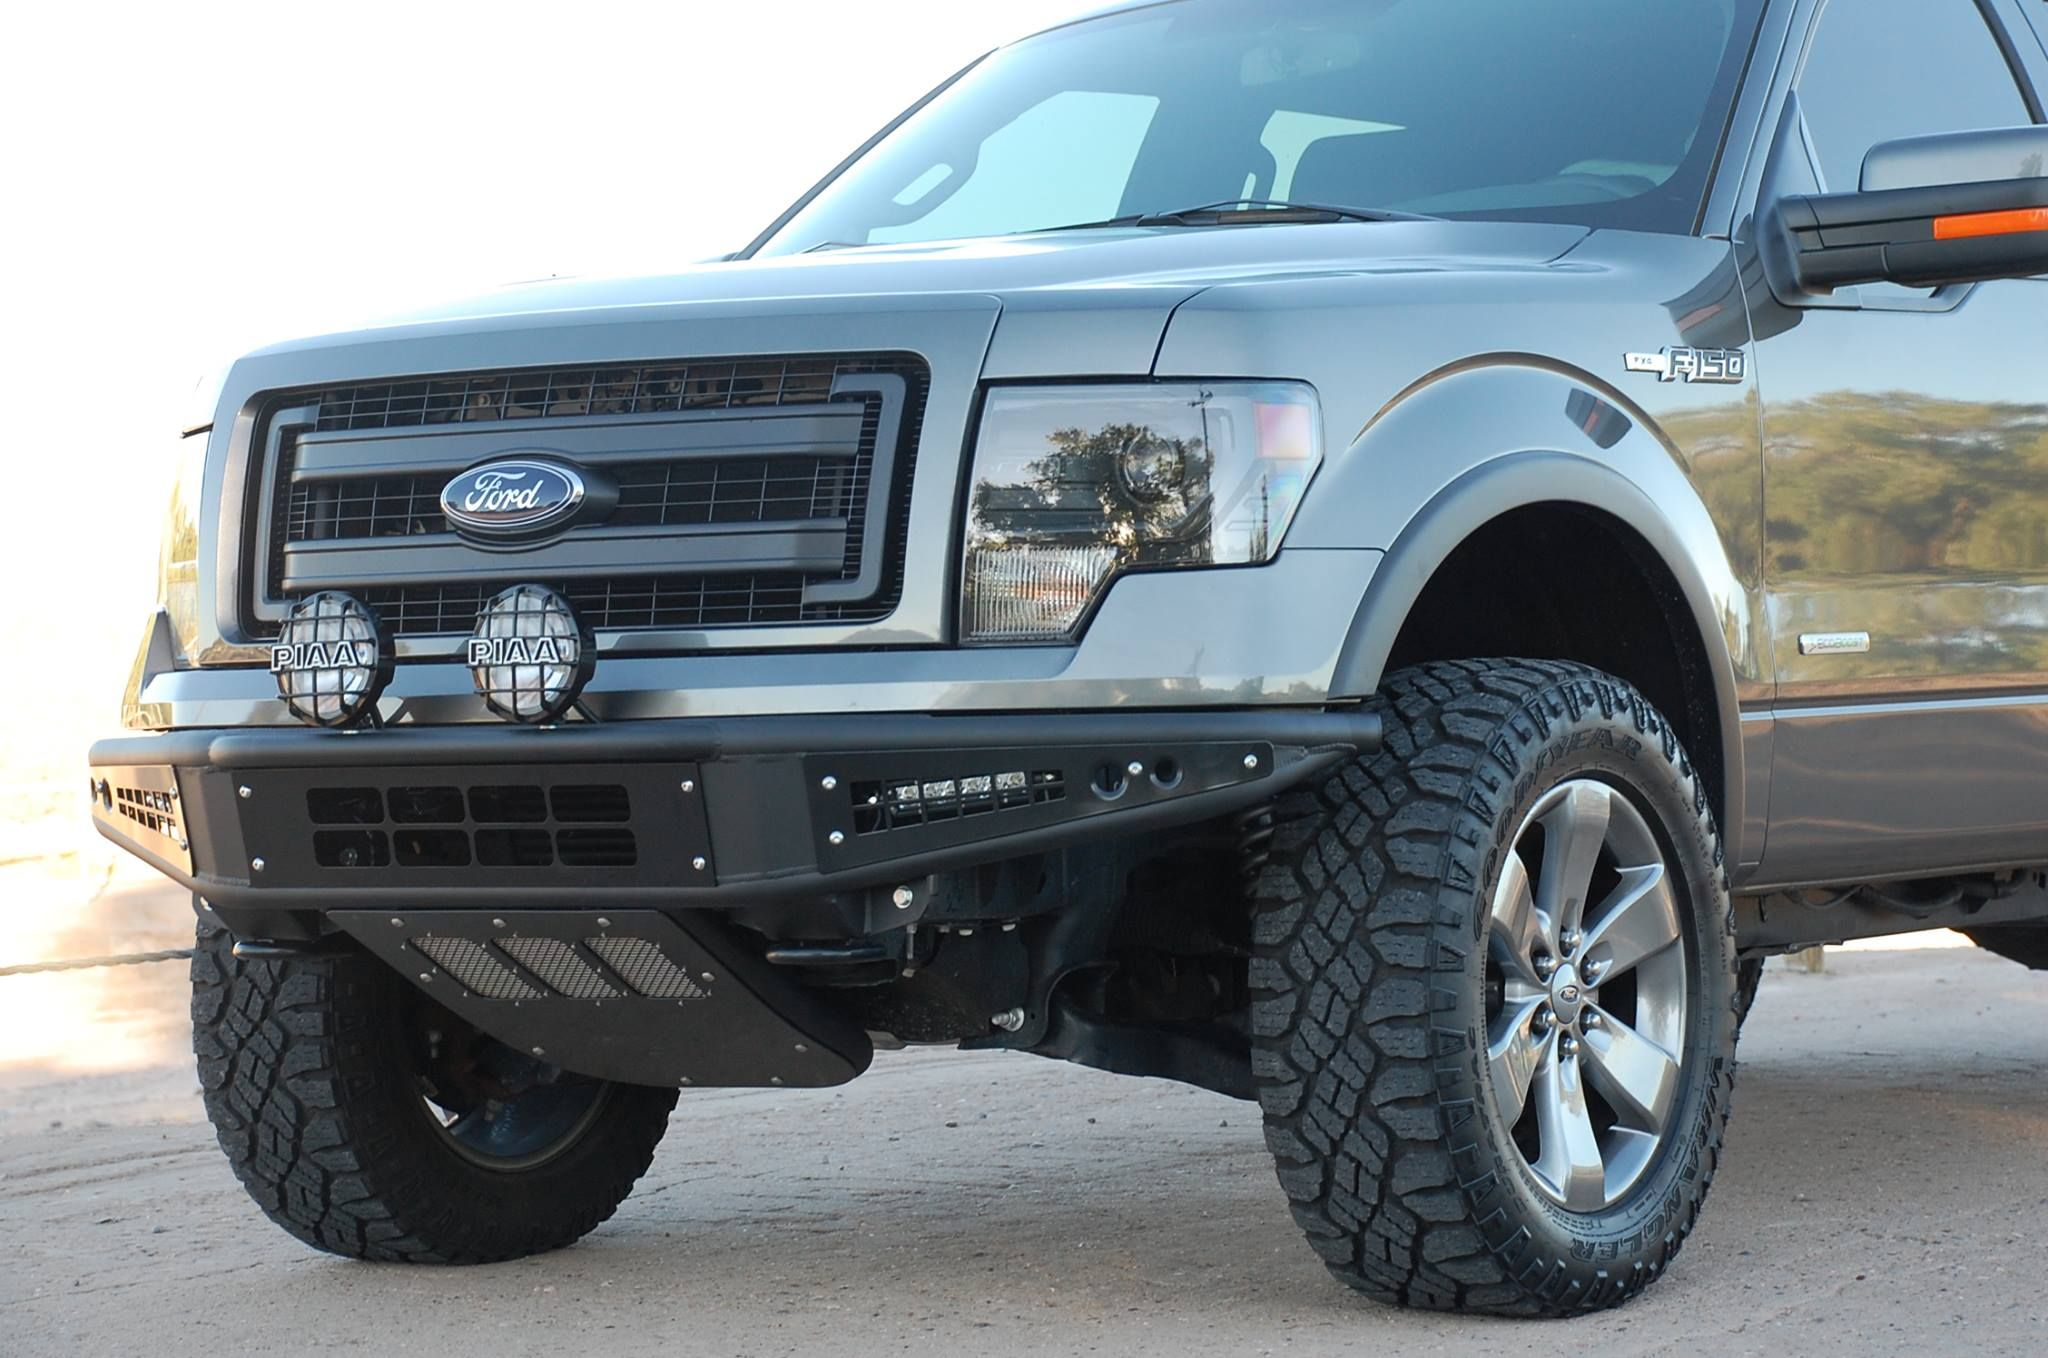 2013 Ford Fx4 With A D D Venom Front Bumper Ford F150